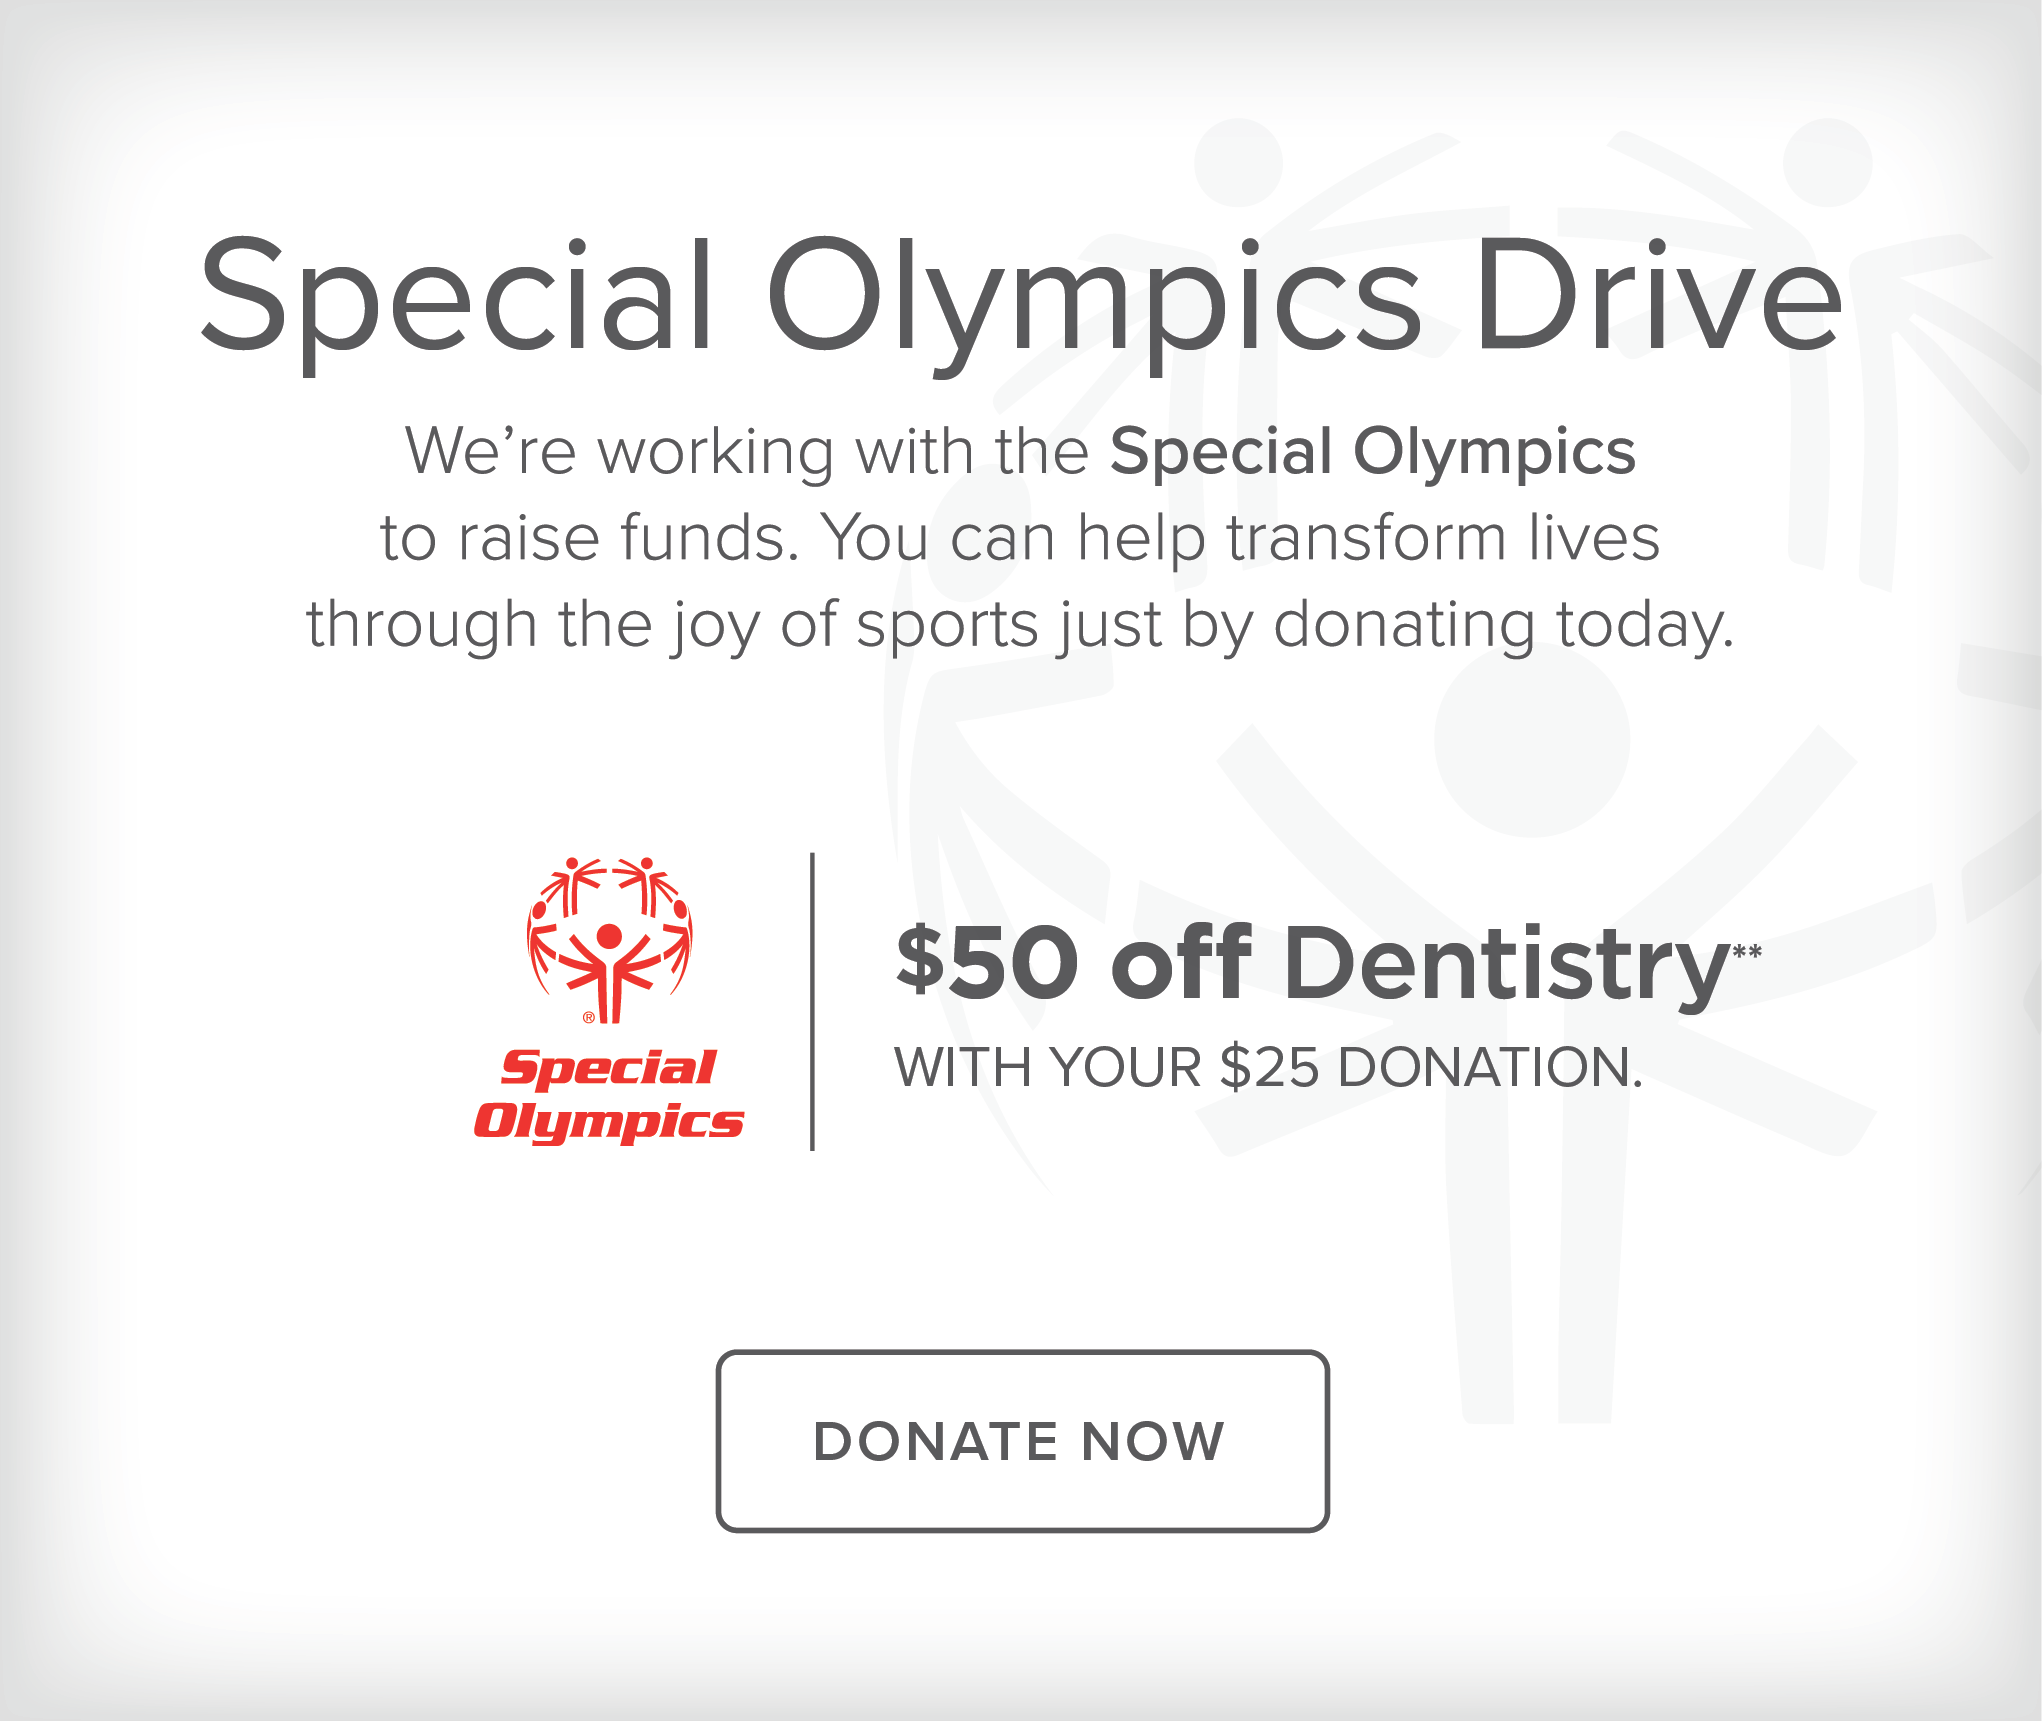 Special Olympics Drive - Constitution Dental Group